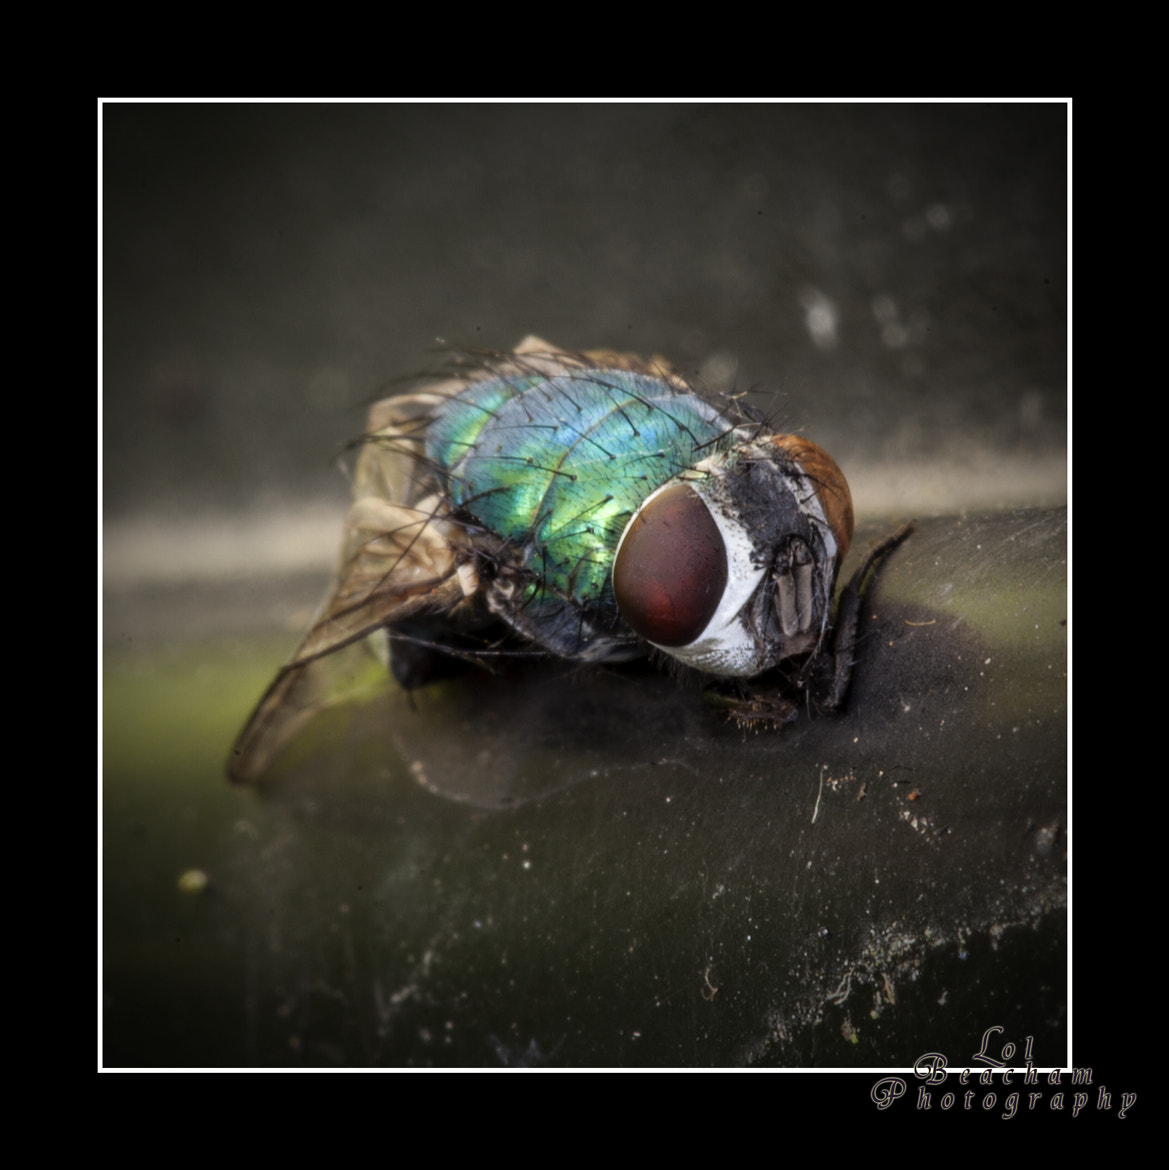 Photograph The Fly by Lol Beacham on 500px